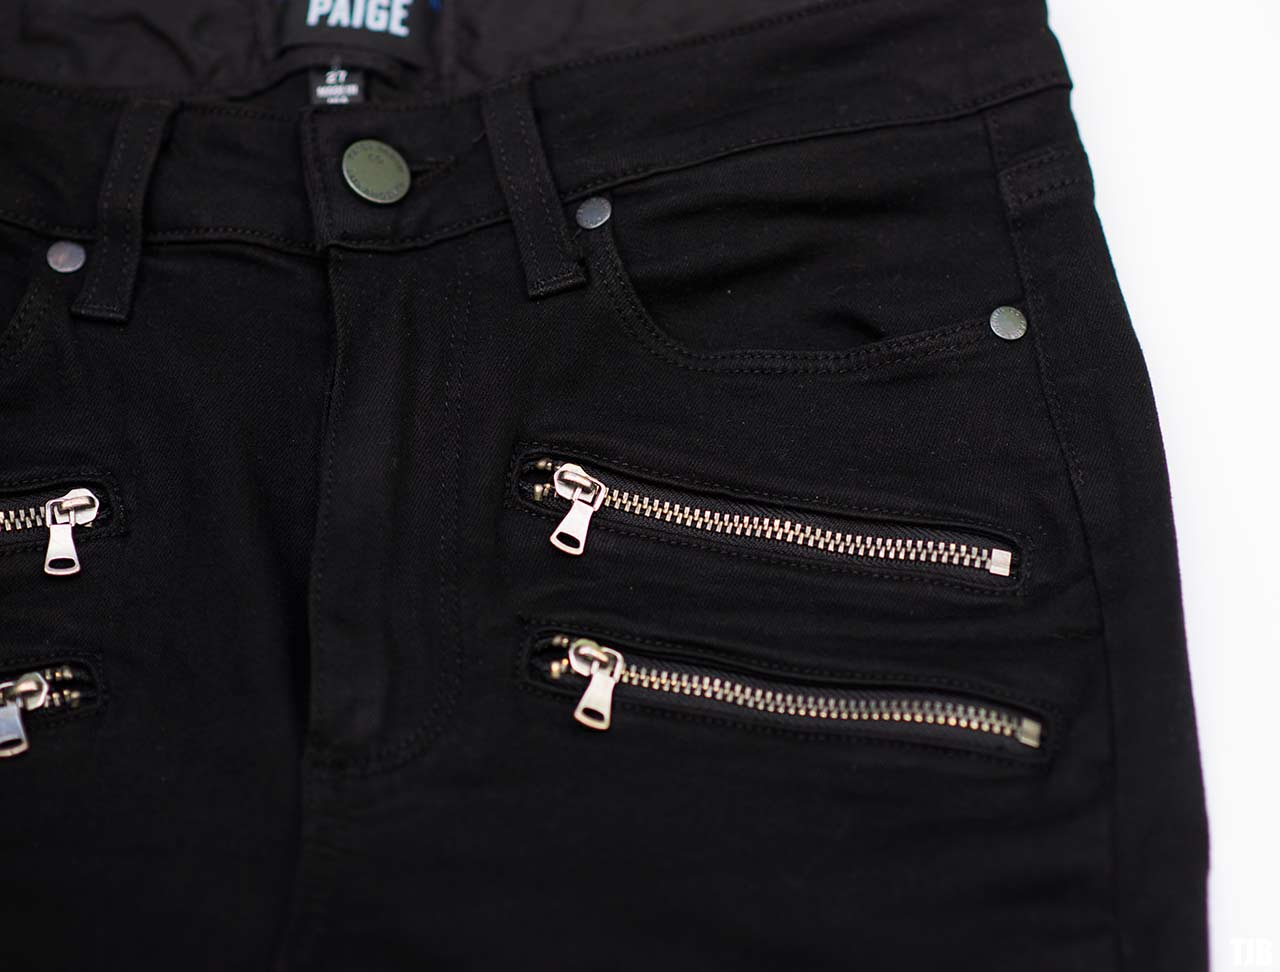 PAIGE High Rise Edgemont Jeans in Black Shadow Review 2